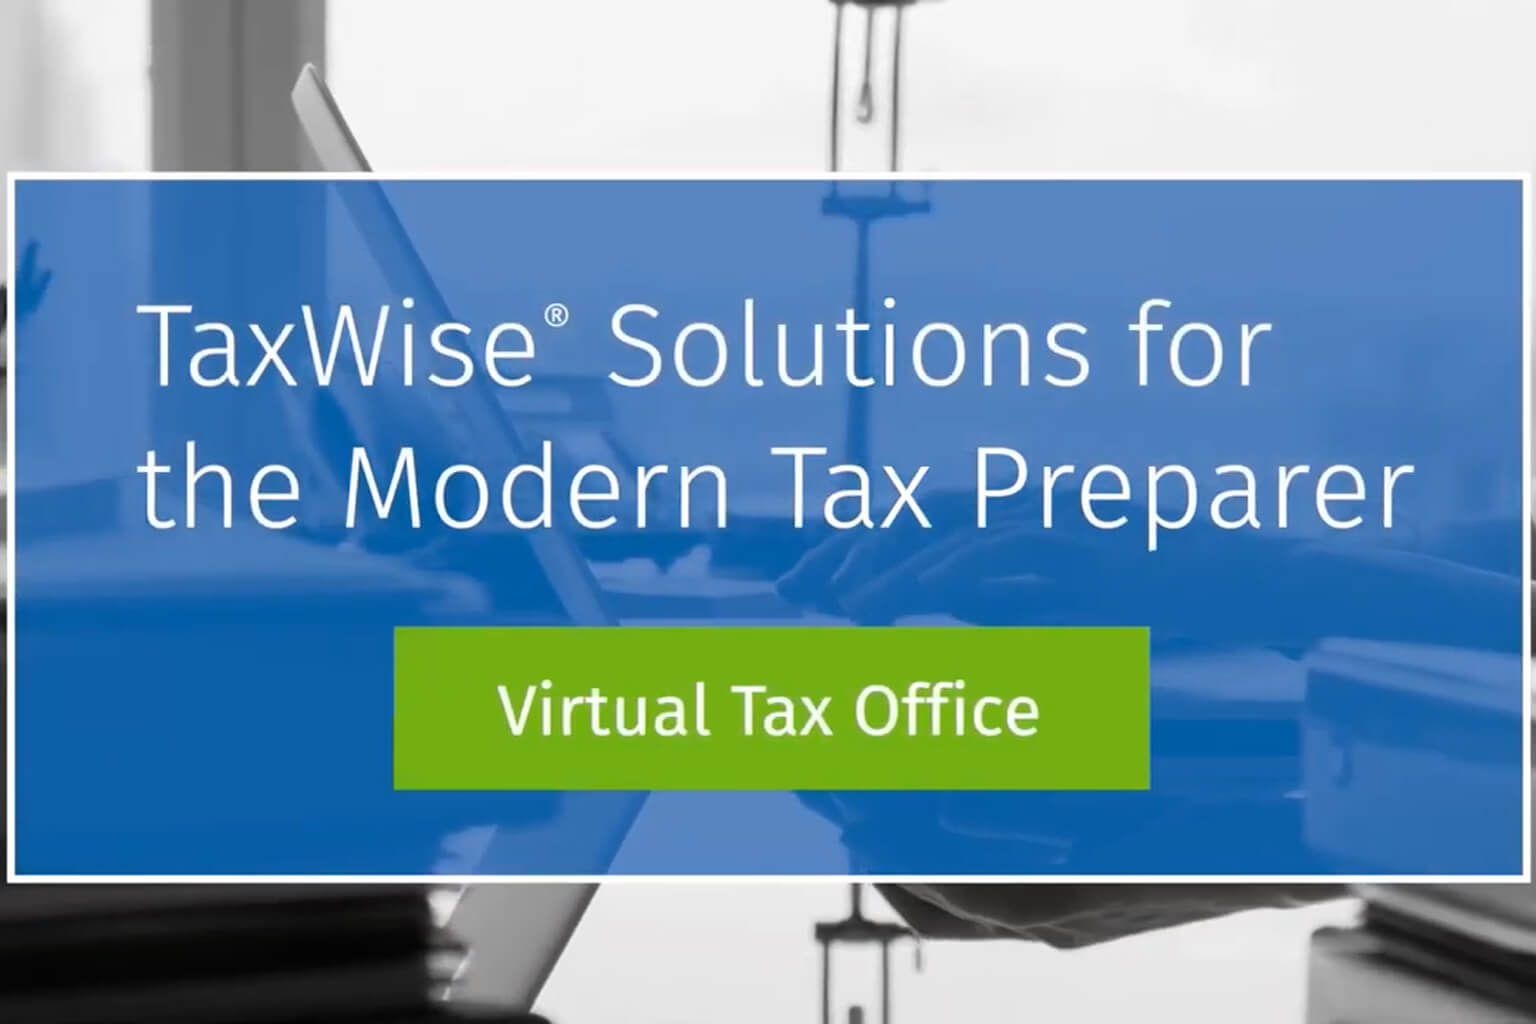 card-asset-video-product-taxwise-solutions-for-the-modern-tax-preparer-1536x1024